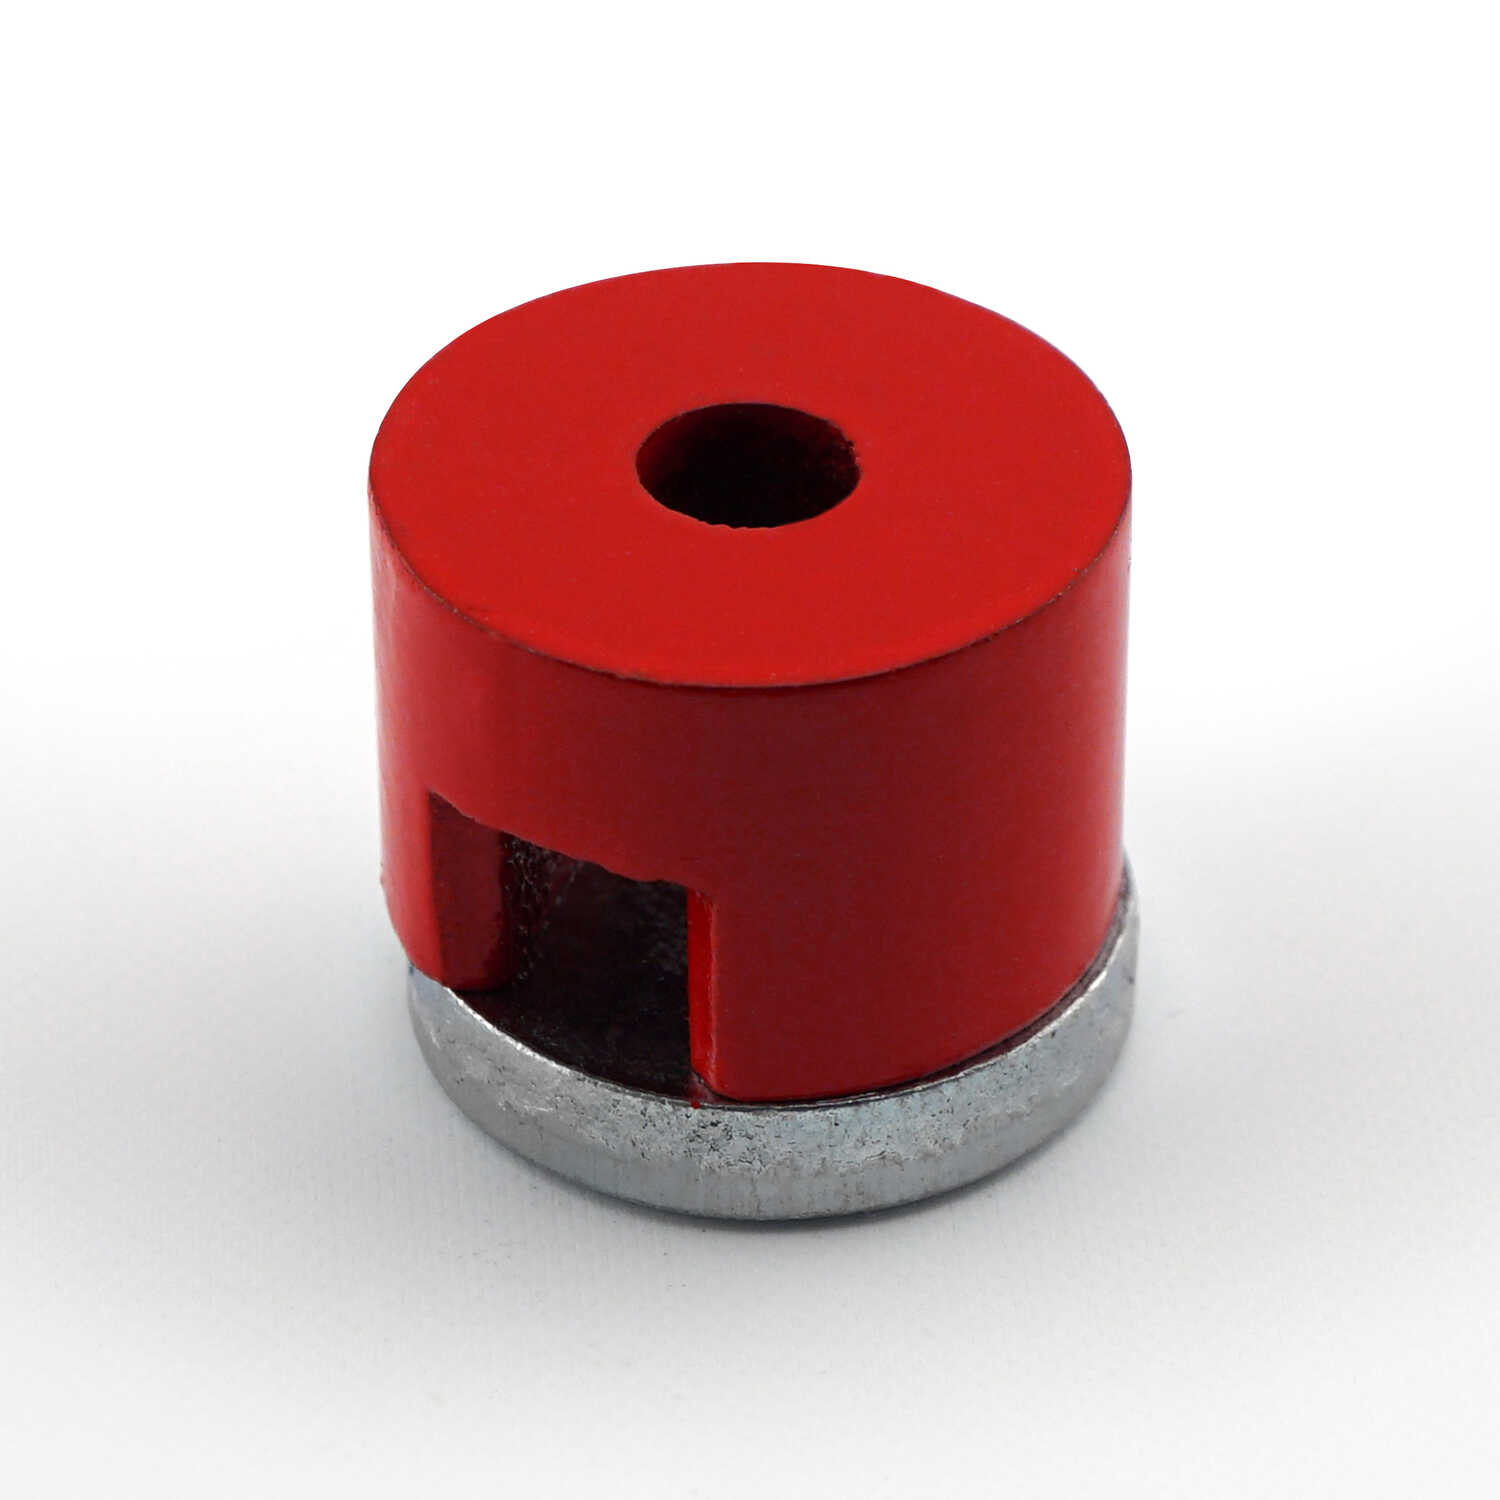 Master Magnetics  .5 Dia. in. Alnico  Work Holding Magnet  4 lb. pull Red  1 pc. 5.5 MGOe